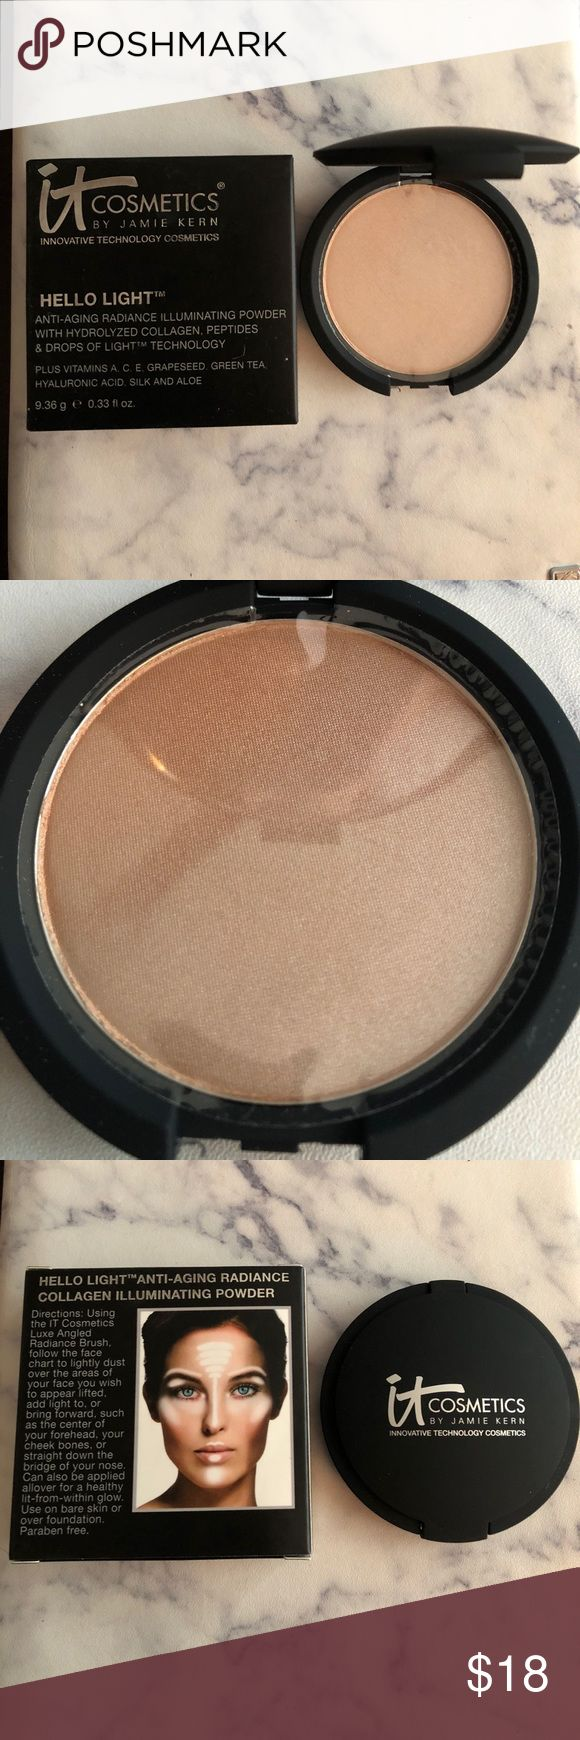 IT Cosmetics | Hello Light Anti-Aging Highlighter IT Cosmetics HELLO LIGHT Anti-Aging Radiance Illuminating Powder with Hydrolyzed Collagen, Peptides and Drops of Light Technology, plus Vitamins A, C, E, Grapeseed, Green Tea, Hyaluronic Acid, Silk and Aloe - NEW WITH BOX/PACKAGING! IT Cosmetics Makeup Luminizer